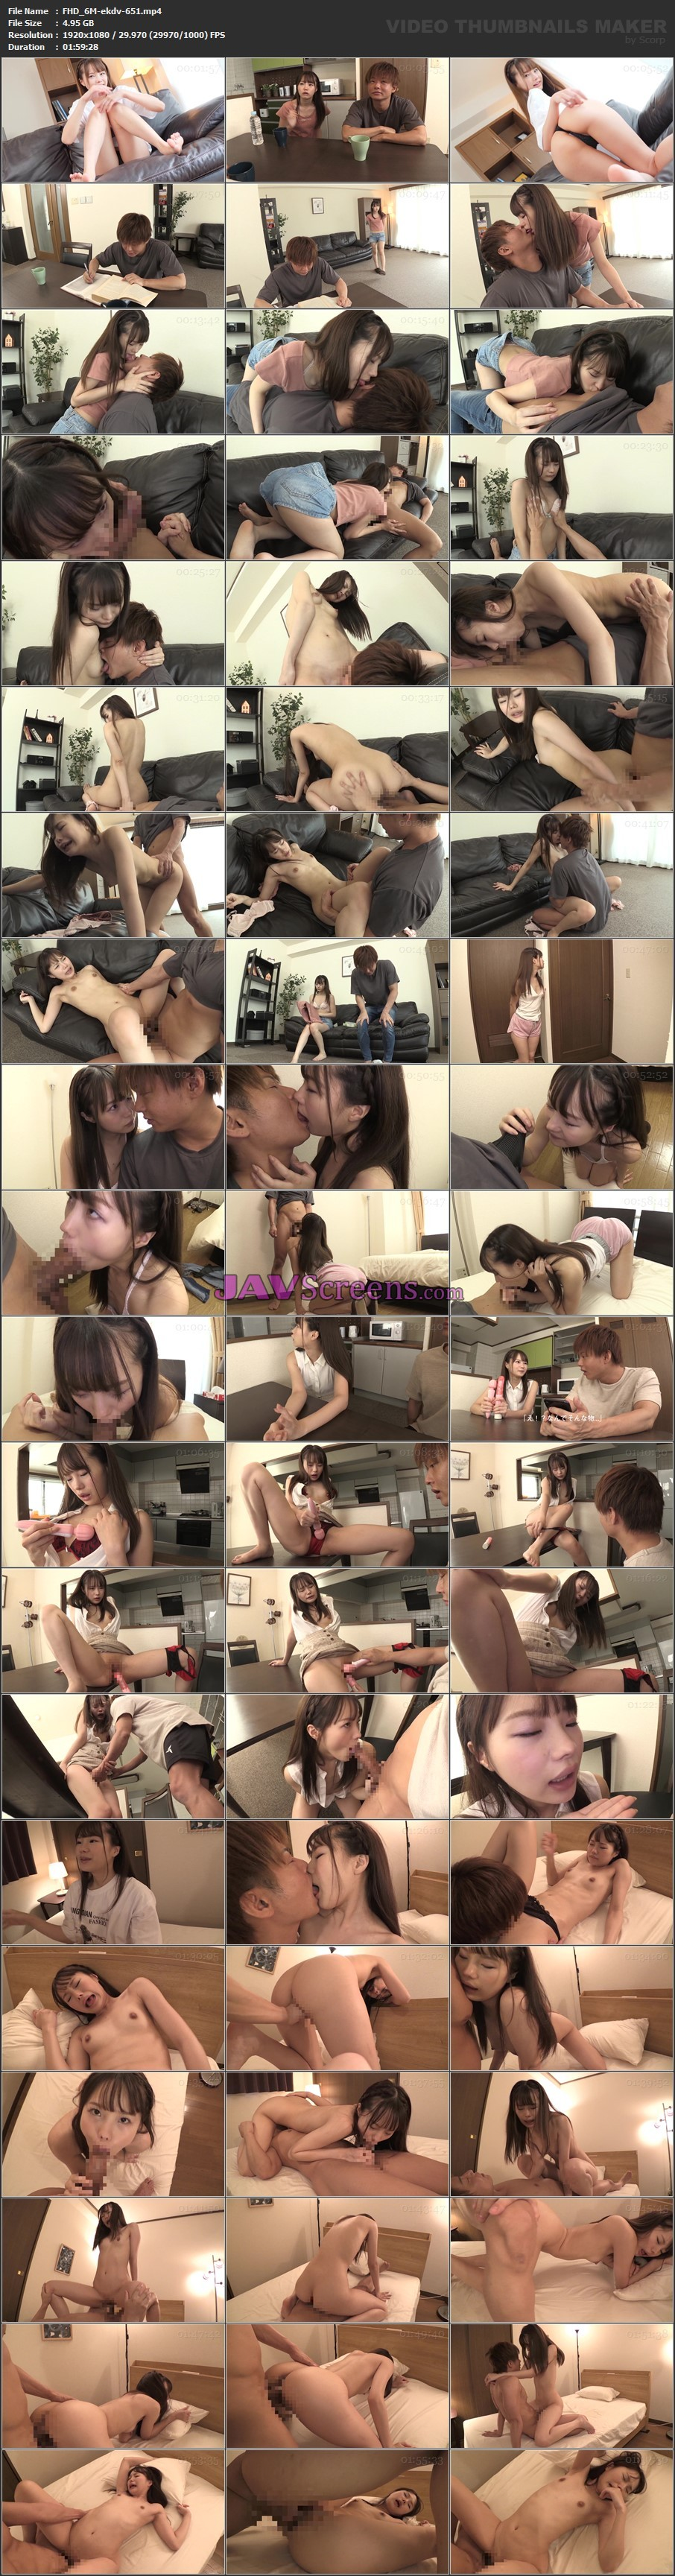 EKDV-651.jpg - JAV Screenshot